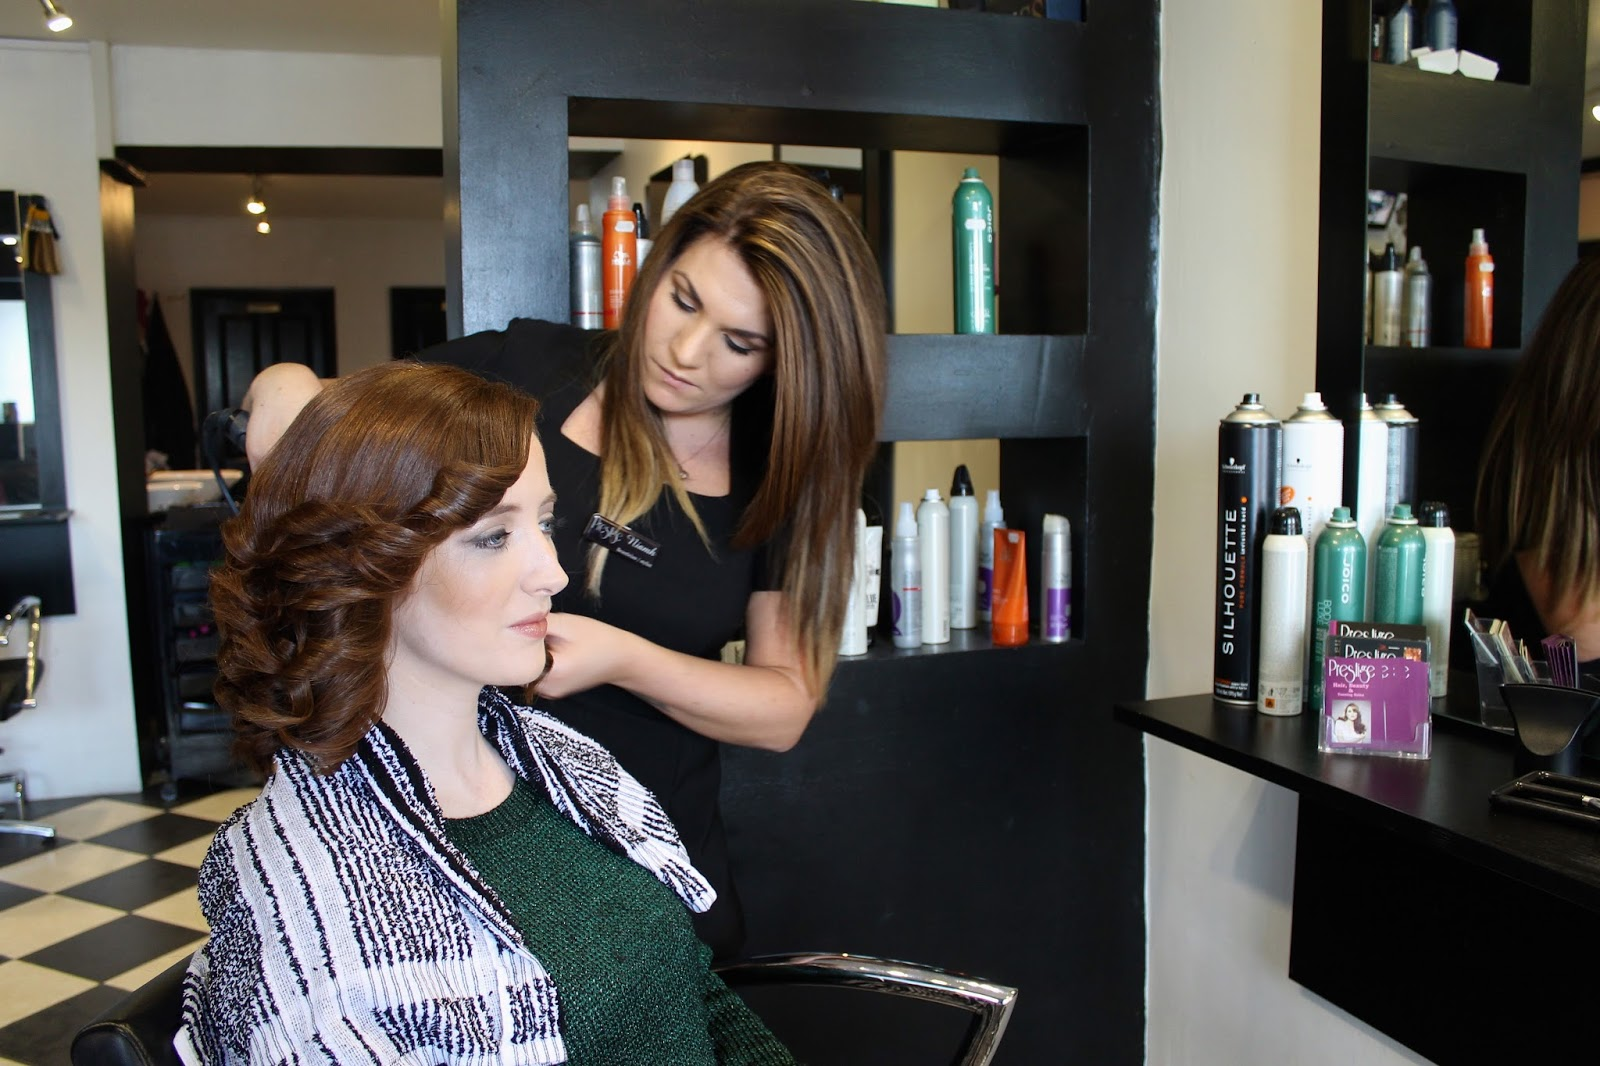 Bec Boop getting her hair curled in Prestige Salon Galway